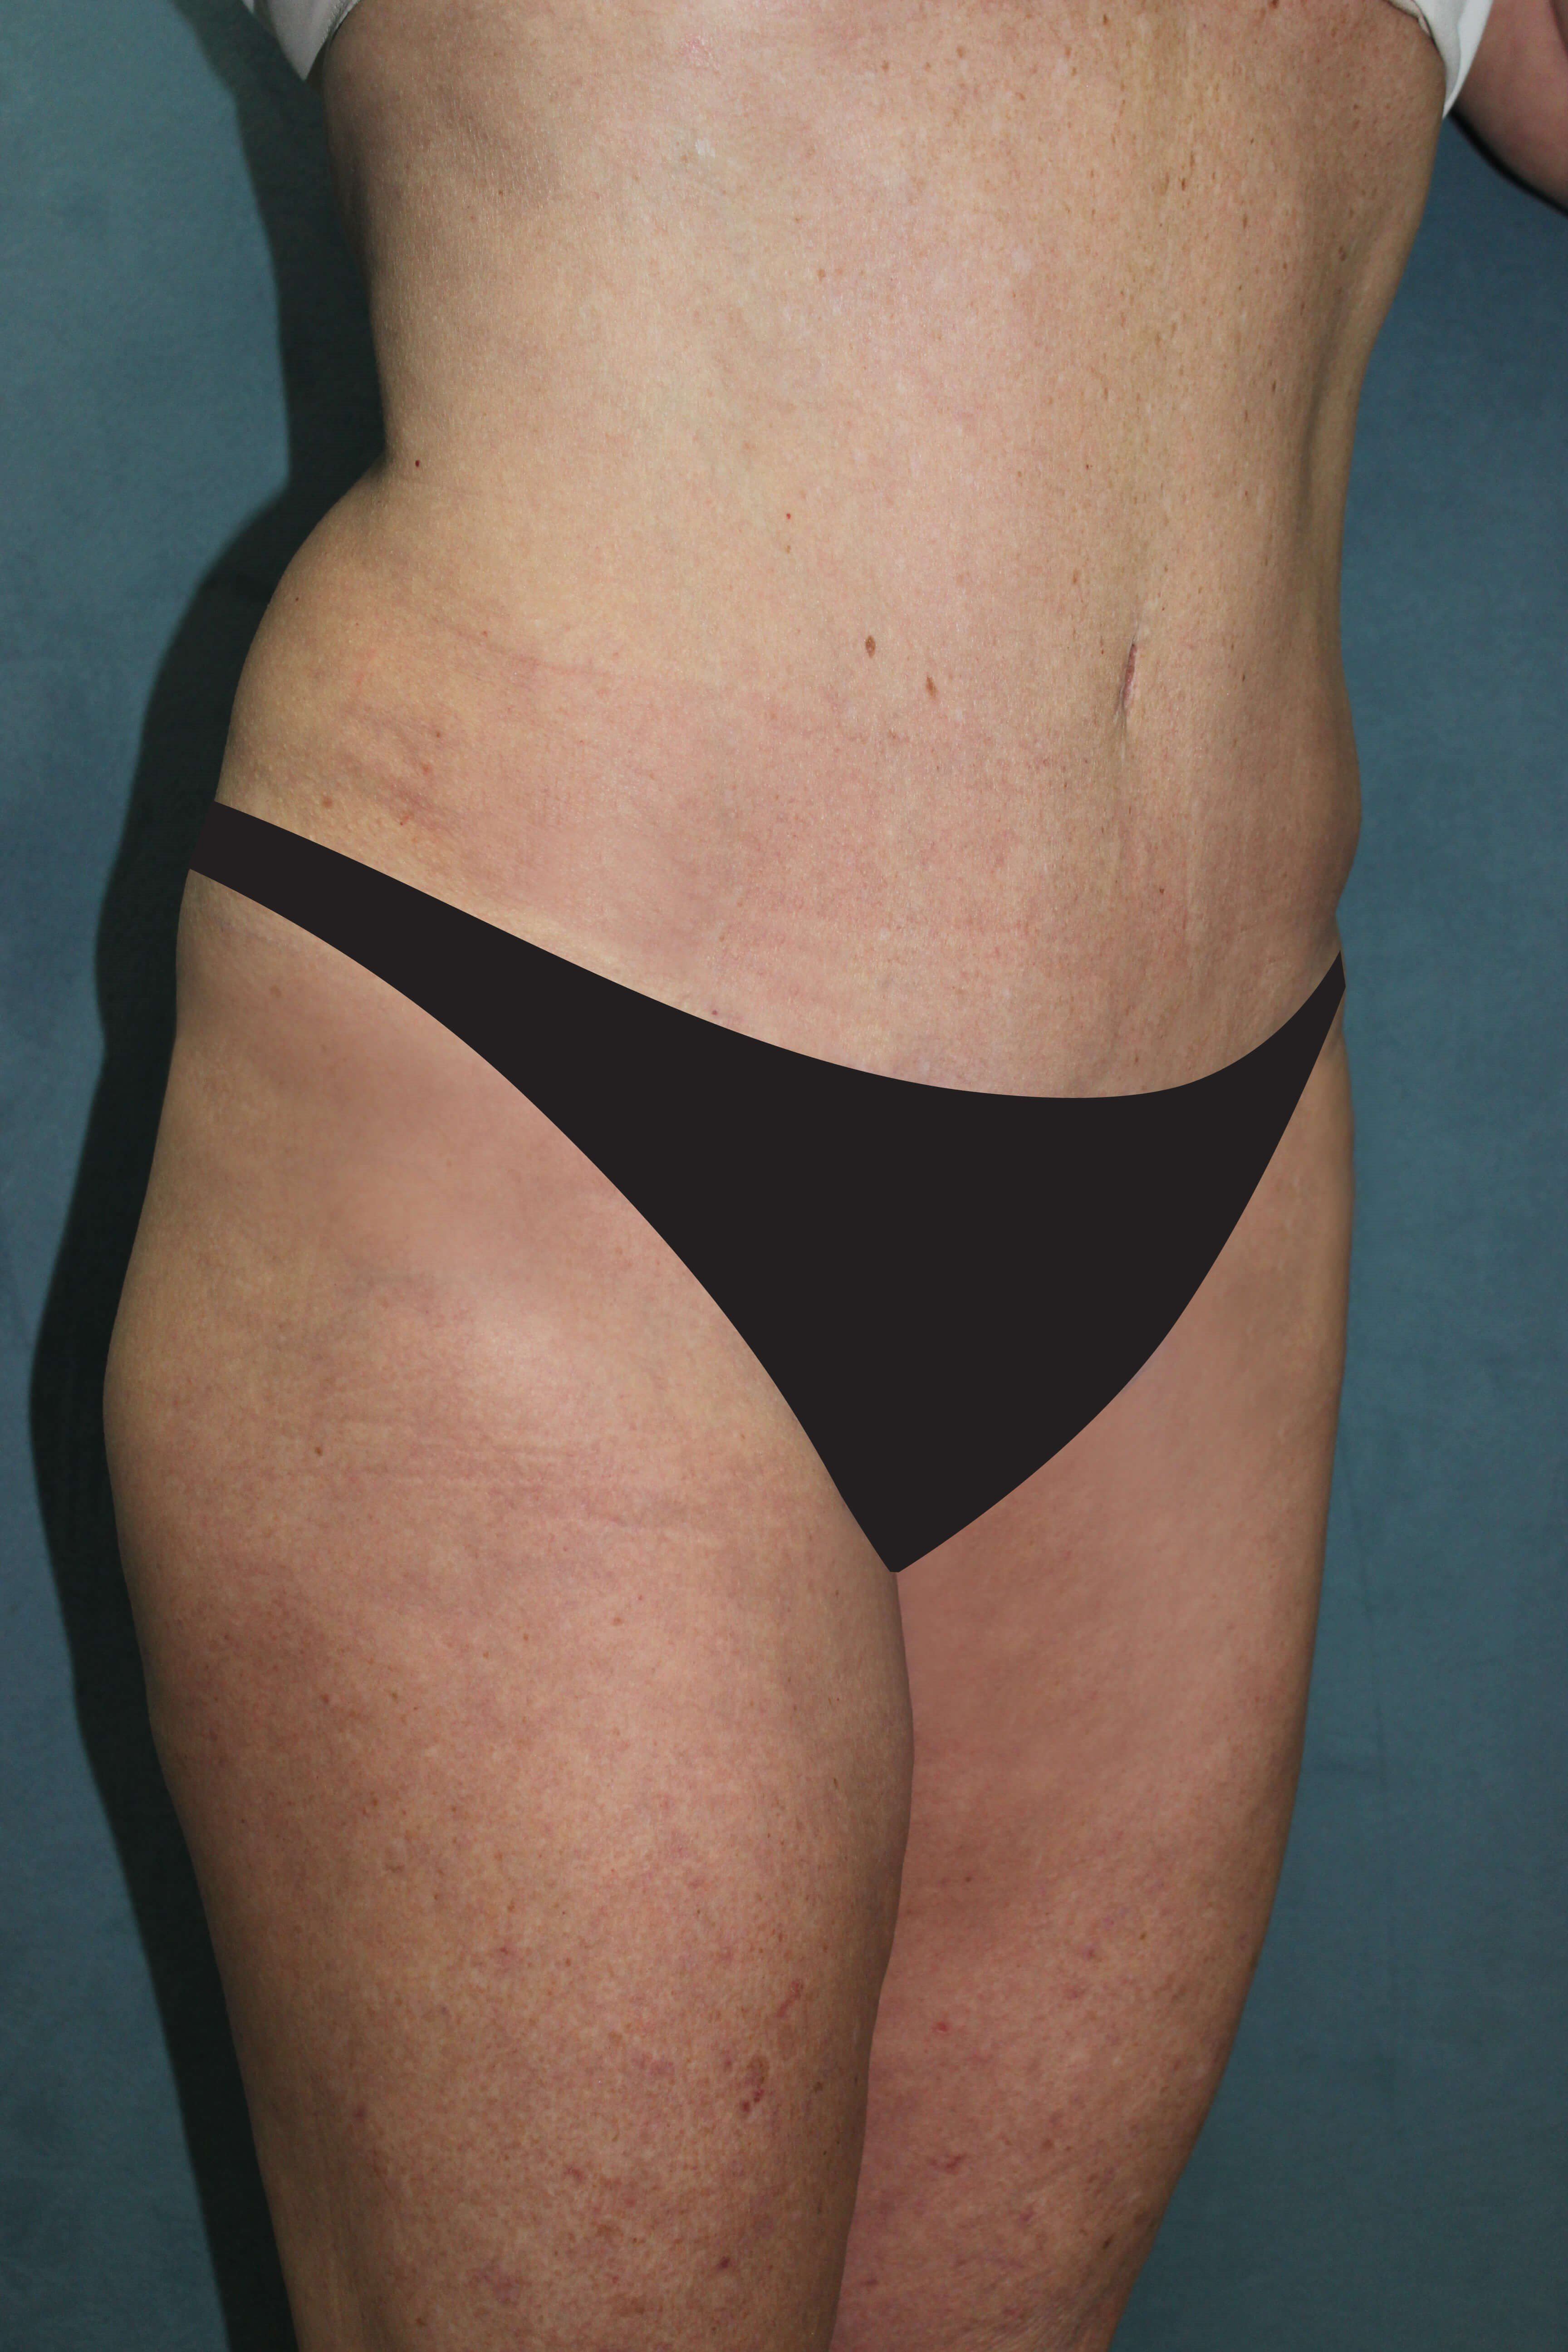 Abdominoplasty & Liposuction After